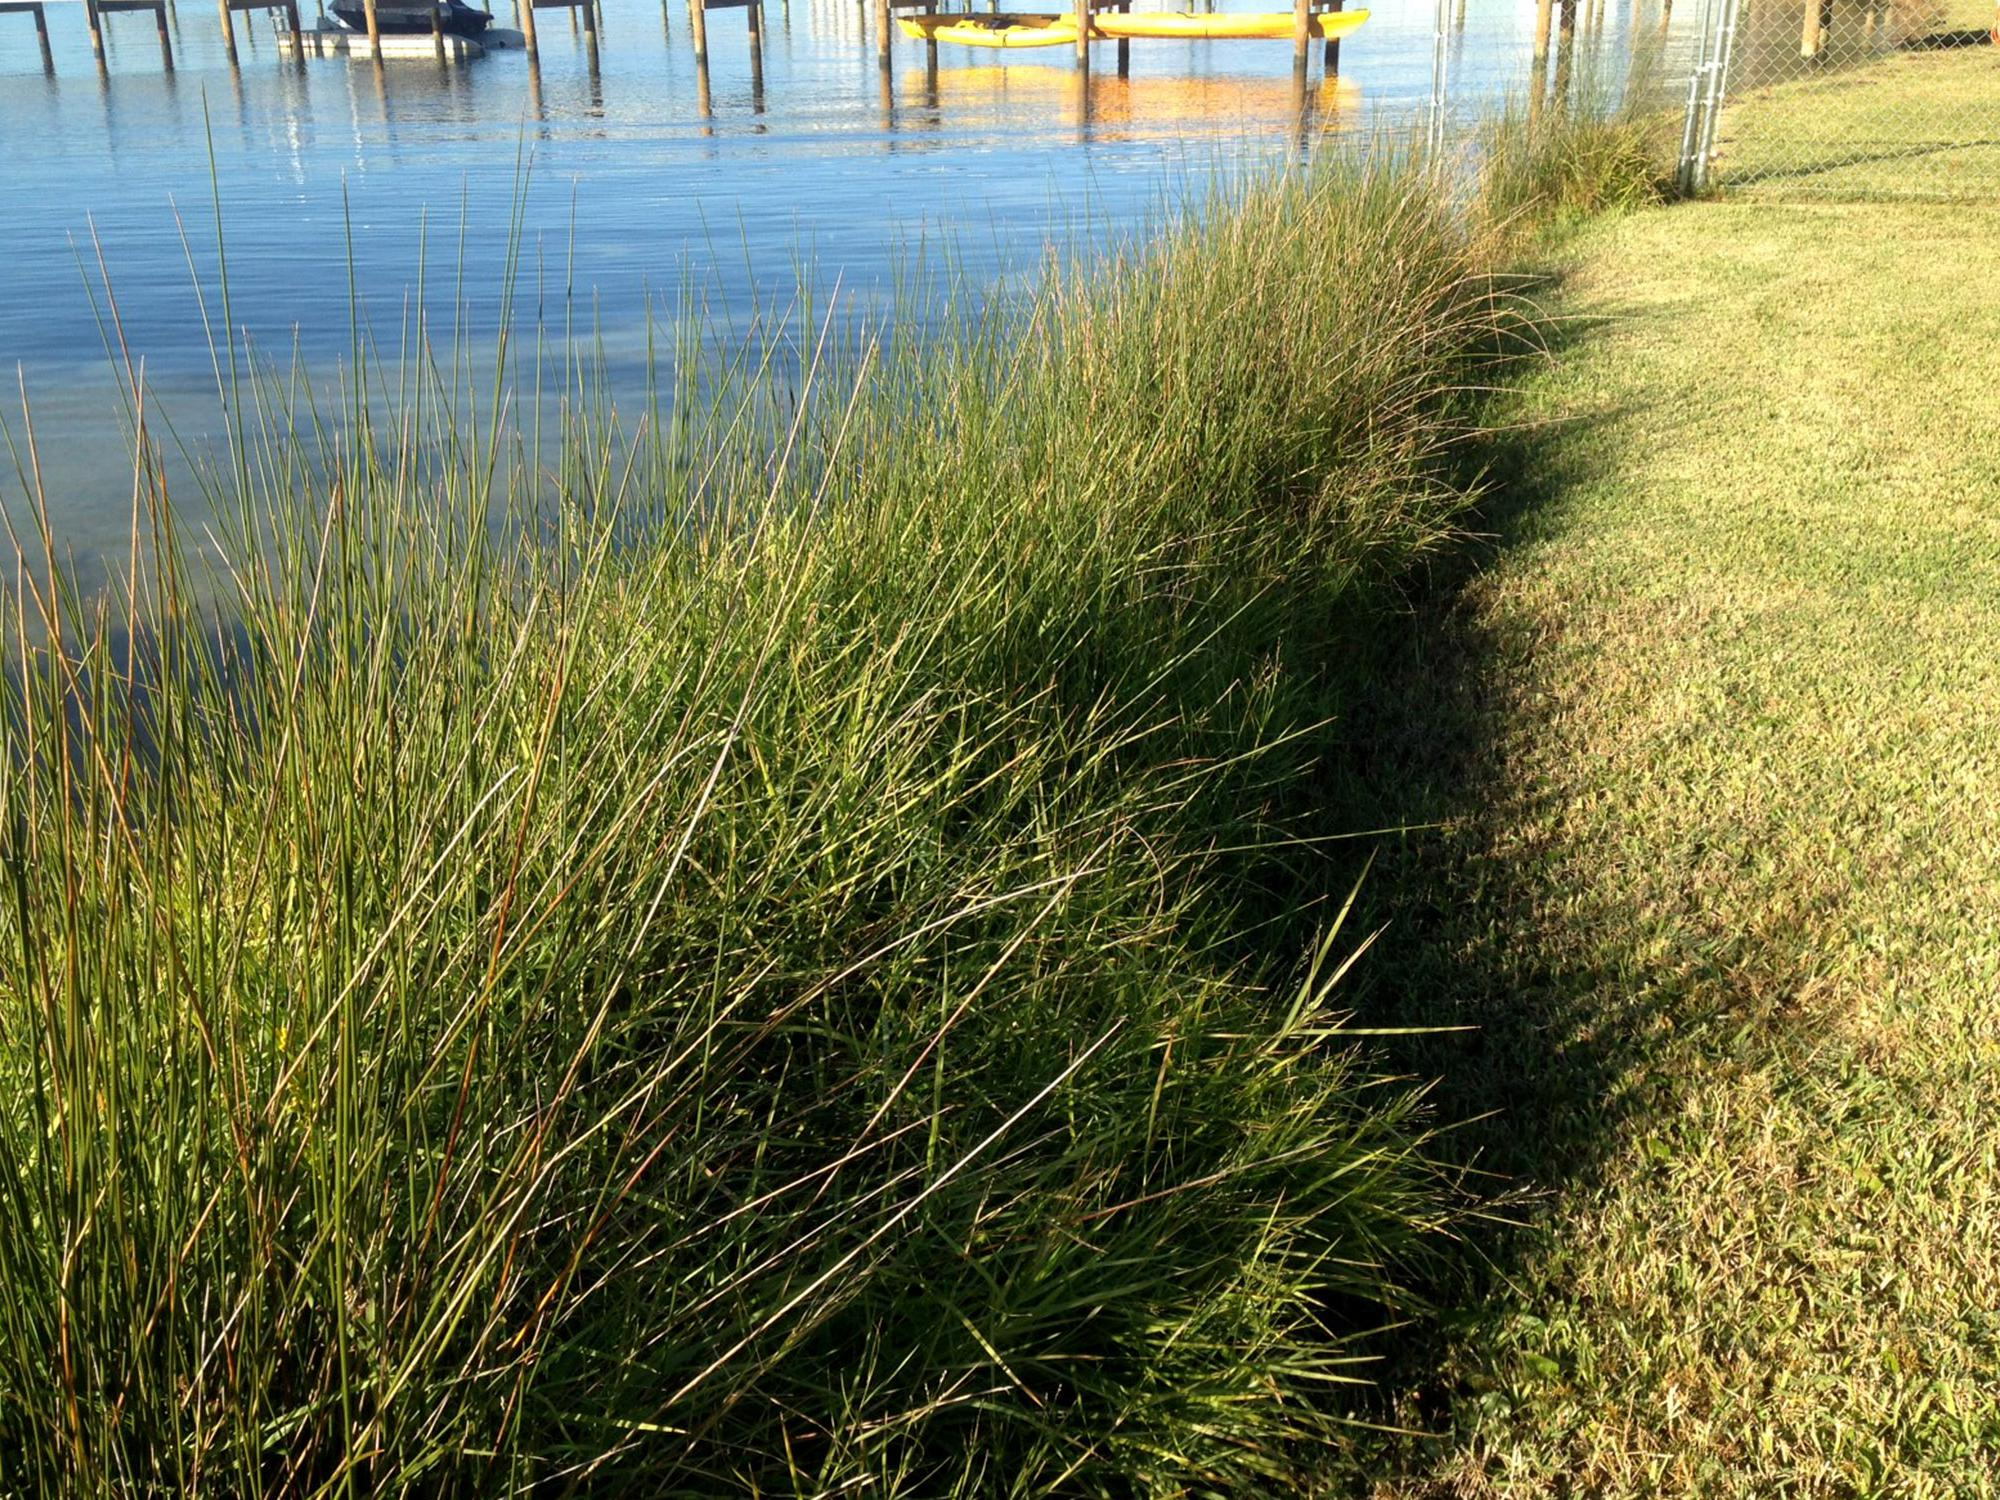 Tall grass grows between a calm body of water and low-cut grass with a wooden pier in the background.